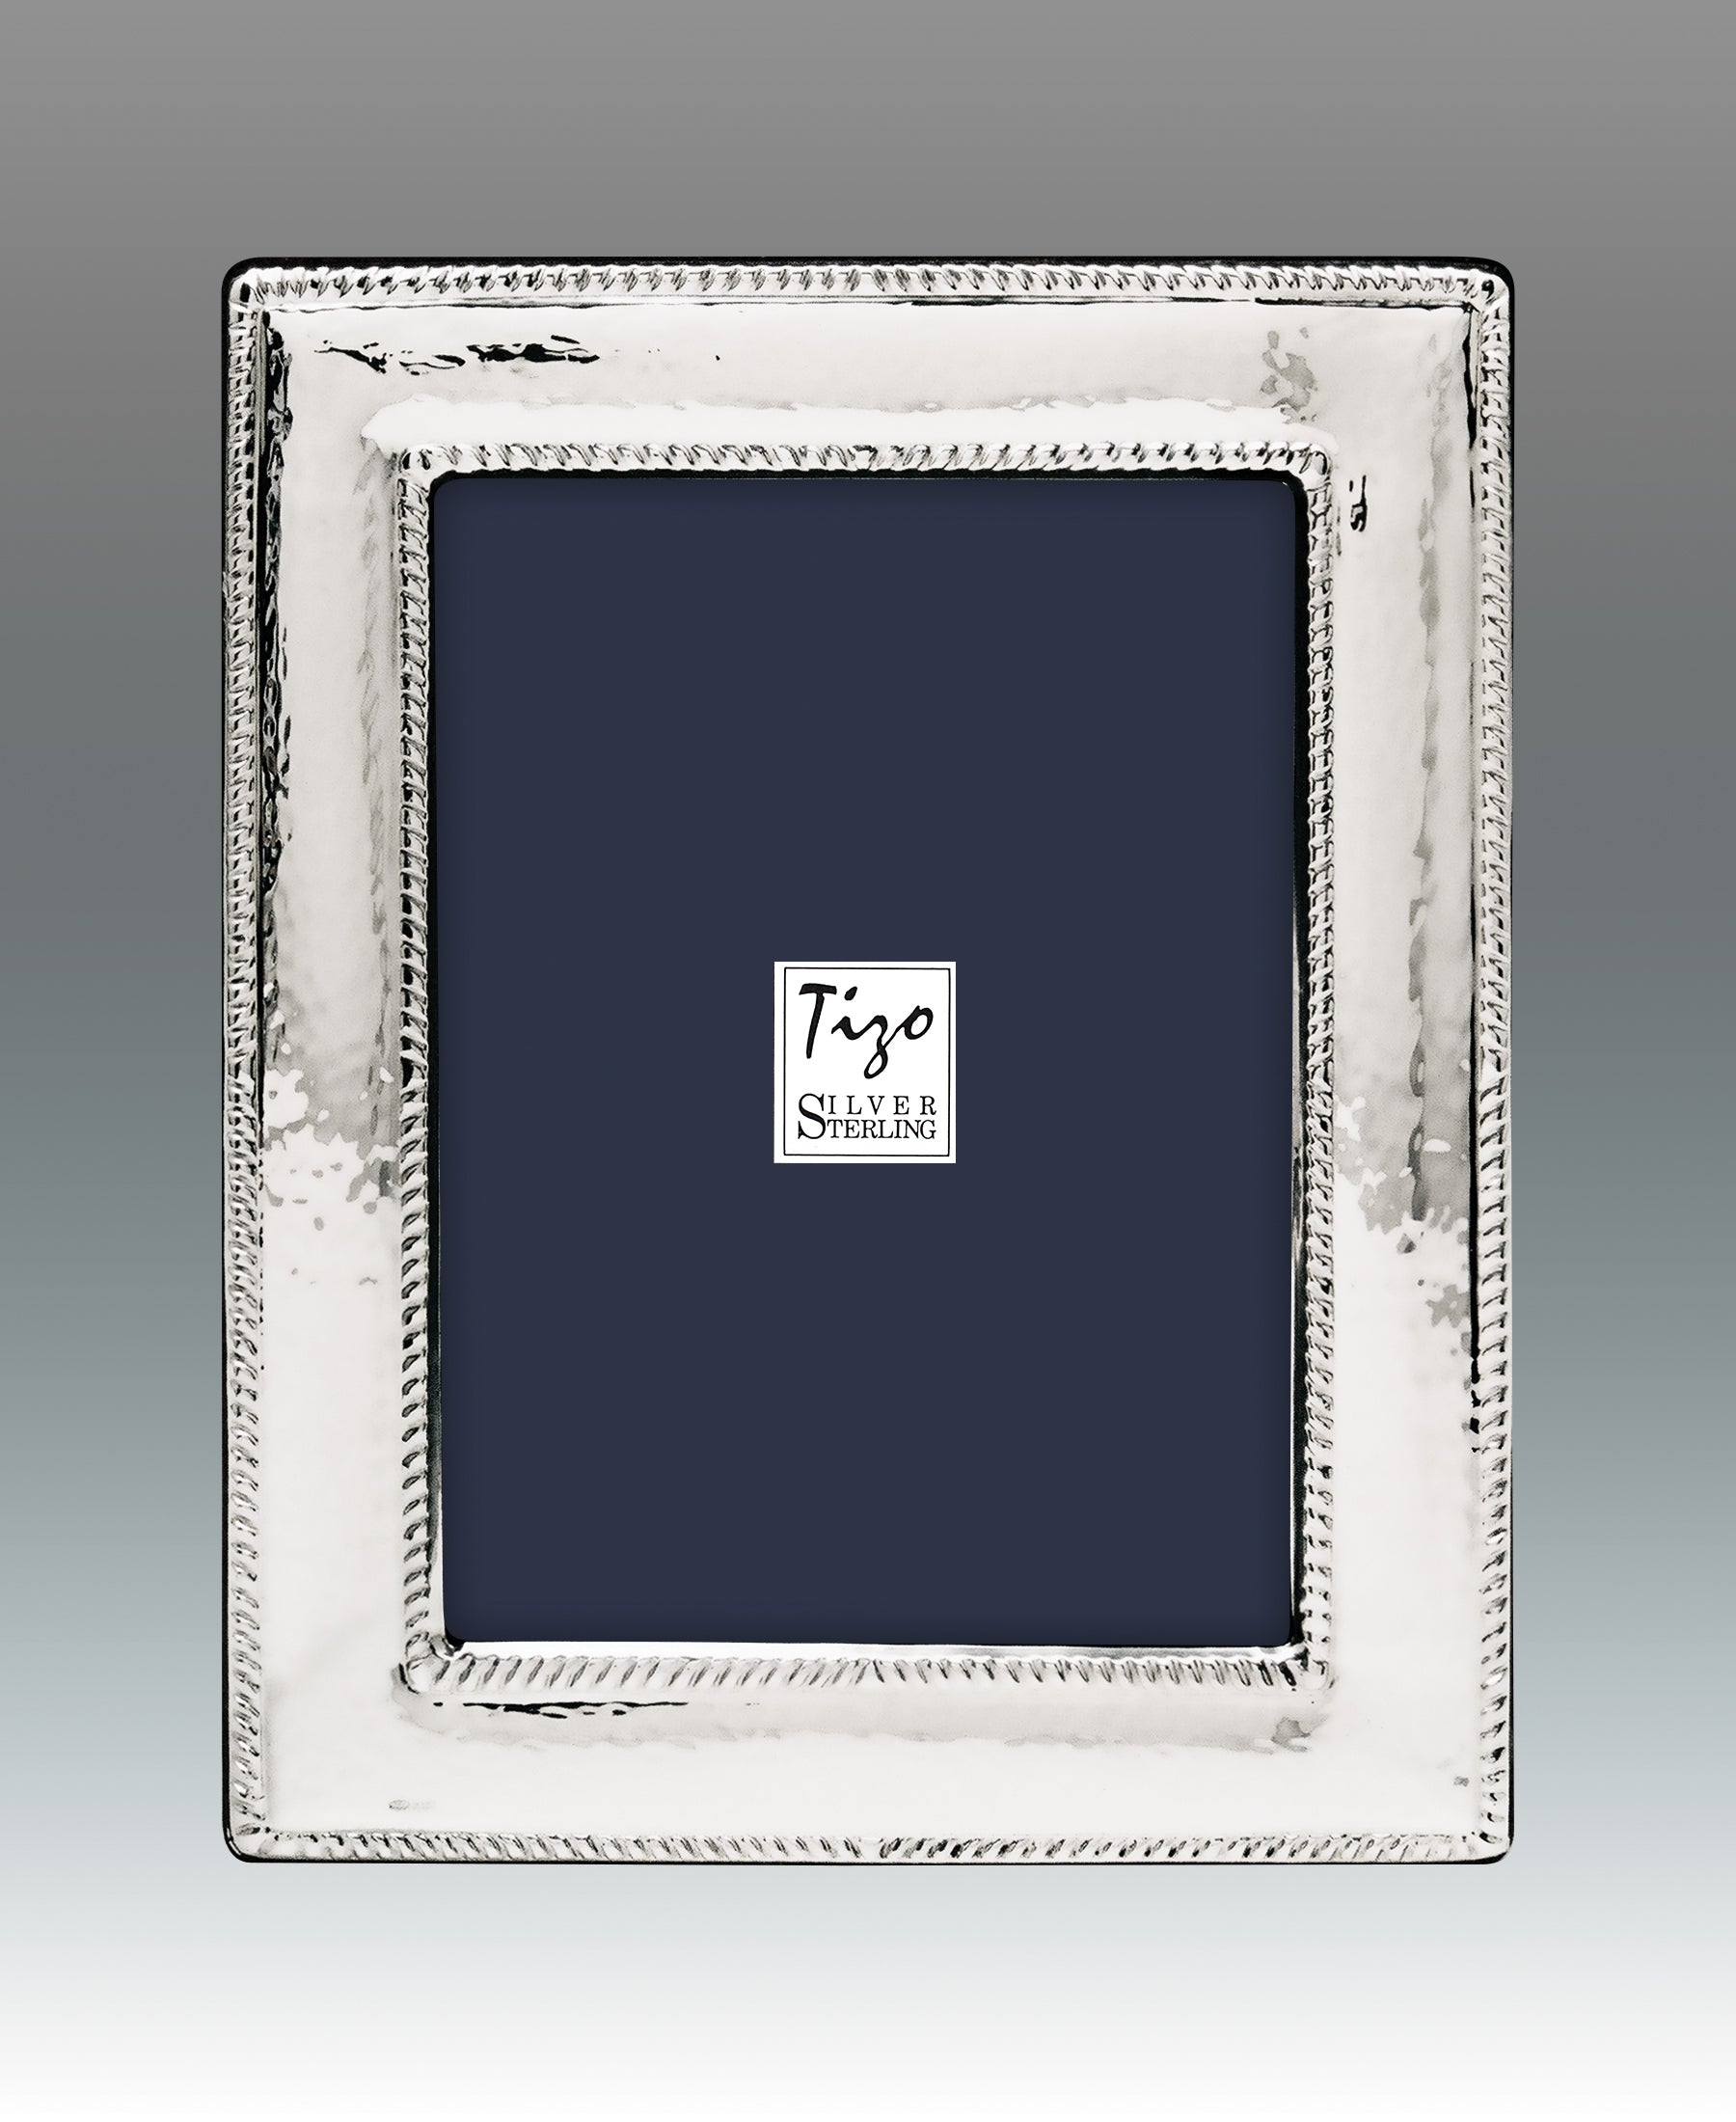 TIZO HAMMERED DOUBLE BEADED STERLING SILVER FRAME